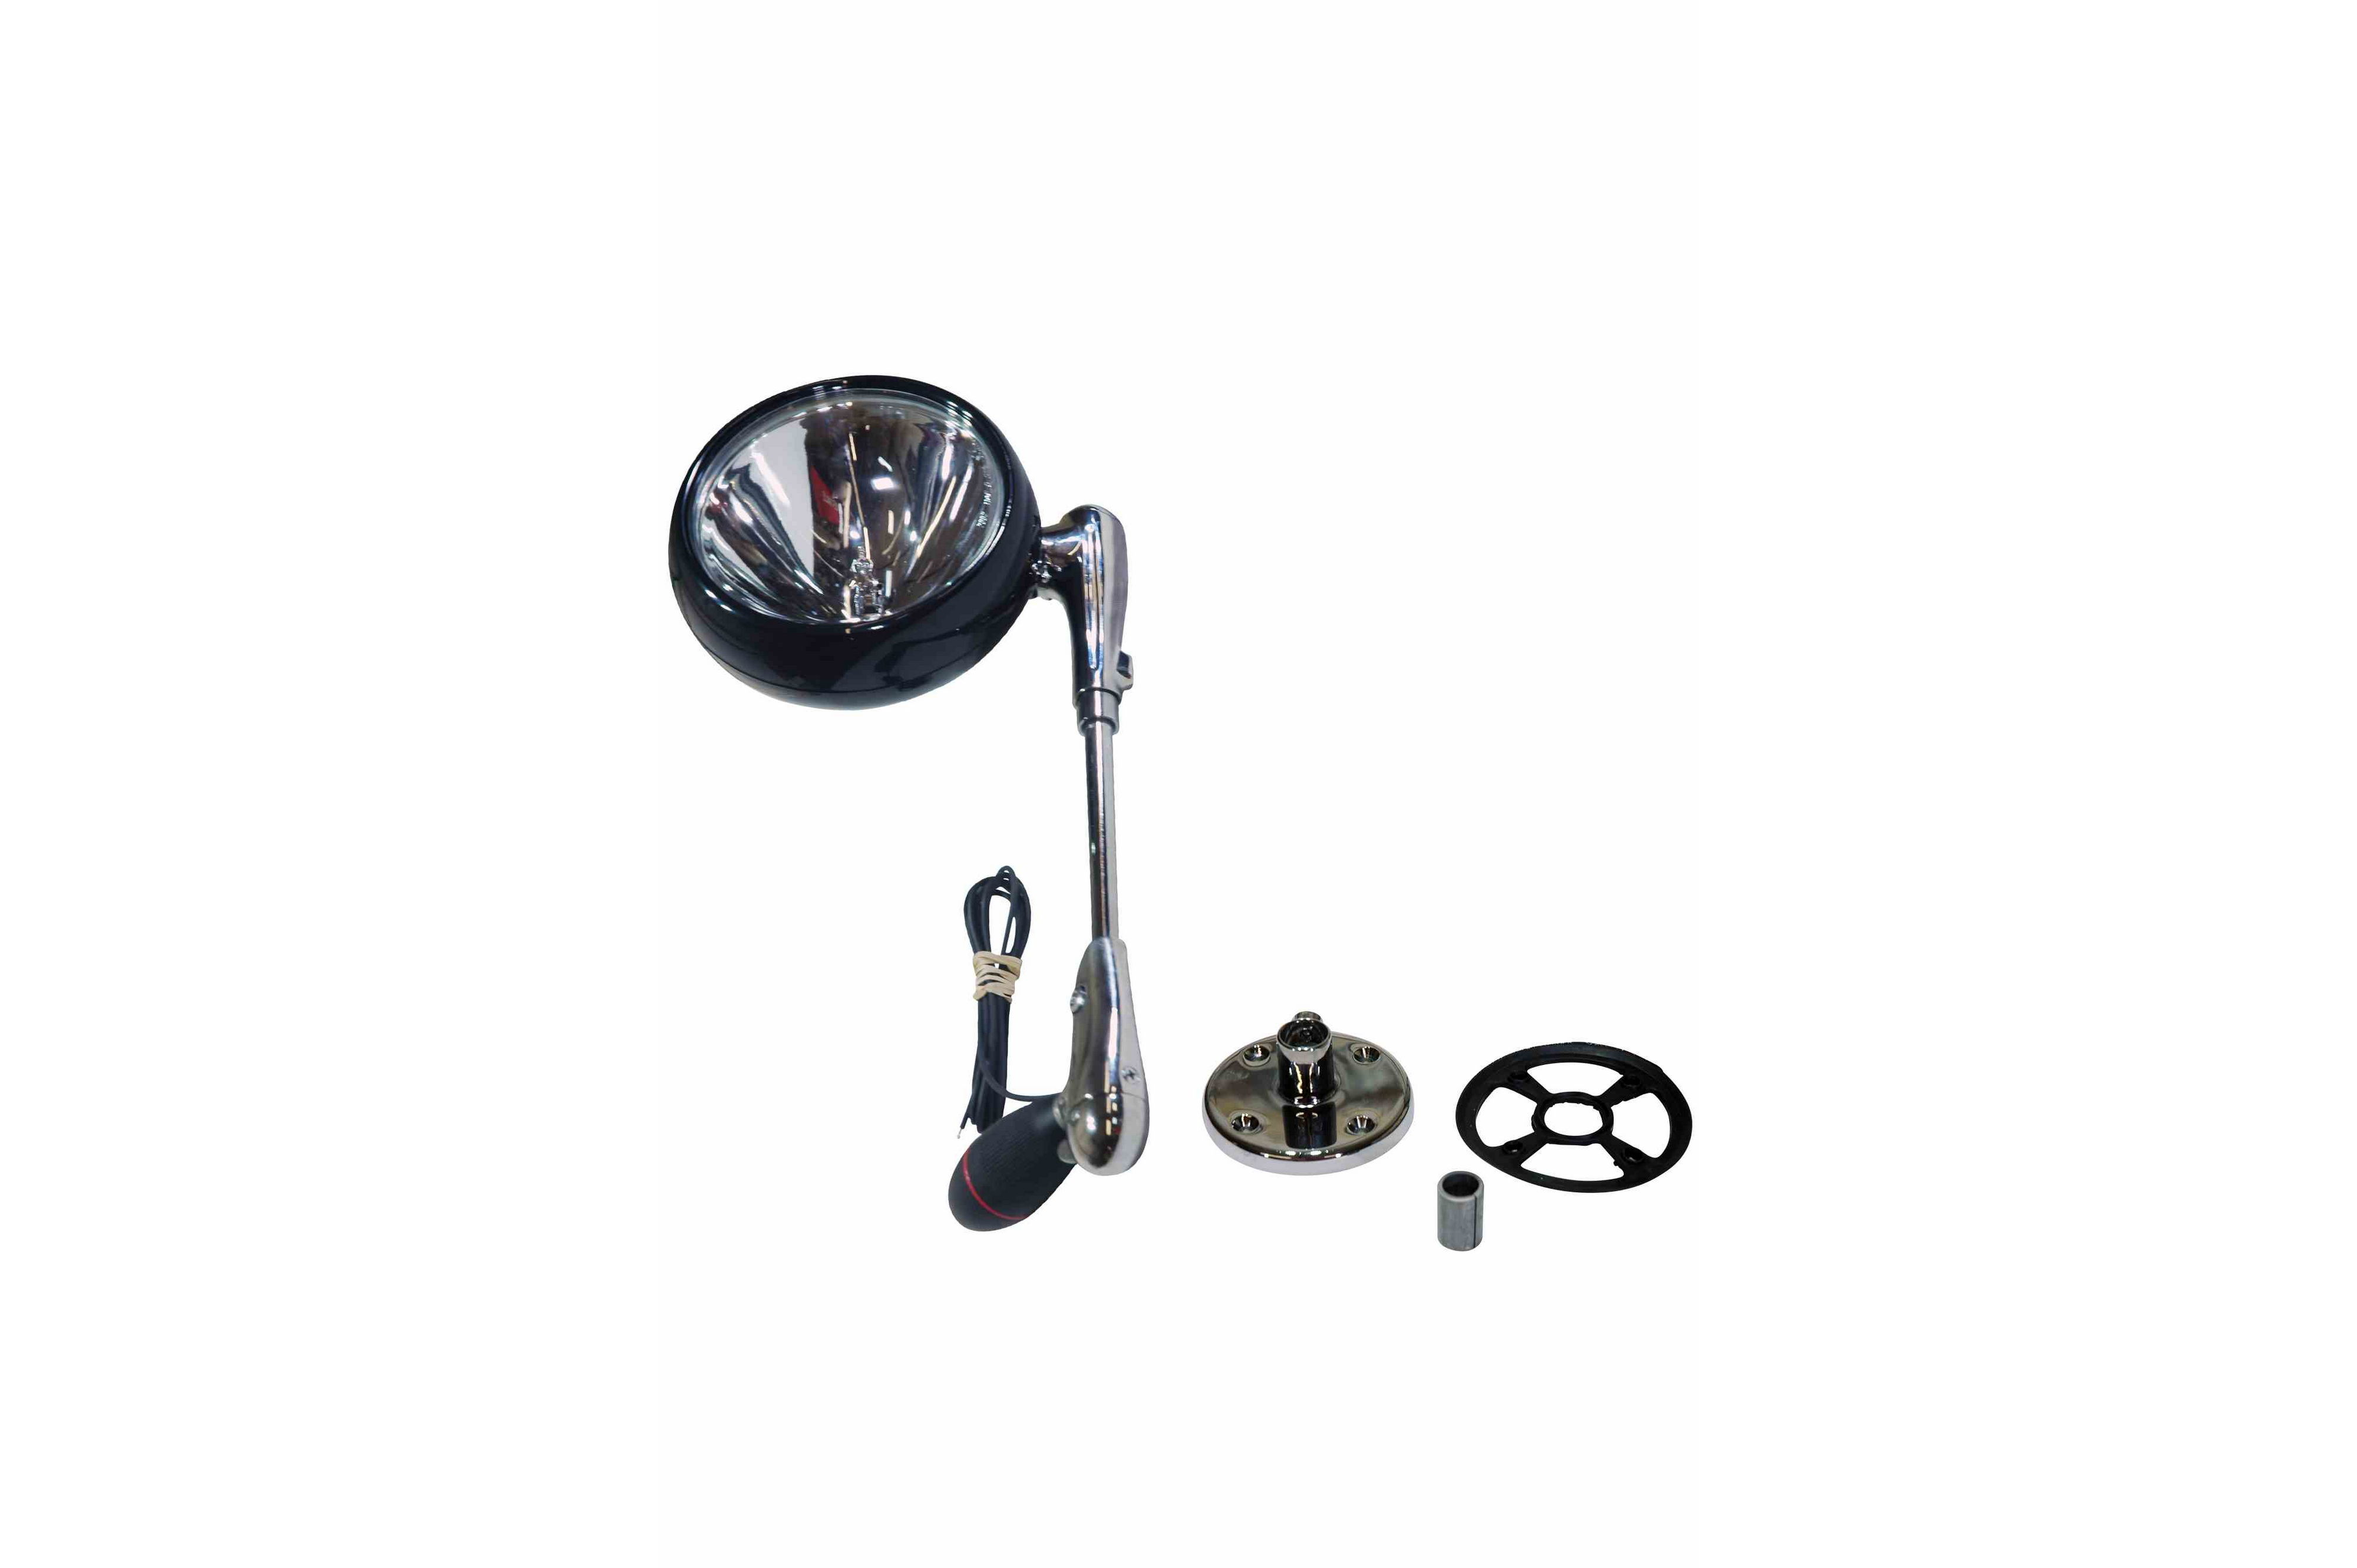 Roof Mount Light With 12 Inch Shaft Rubberized Handle And 100 Watt Lamp